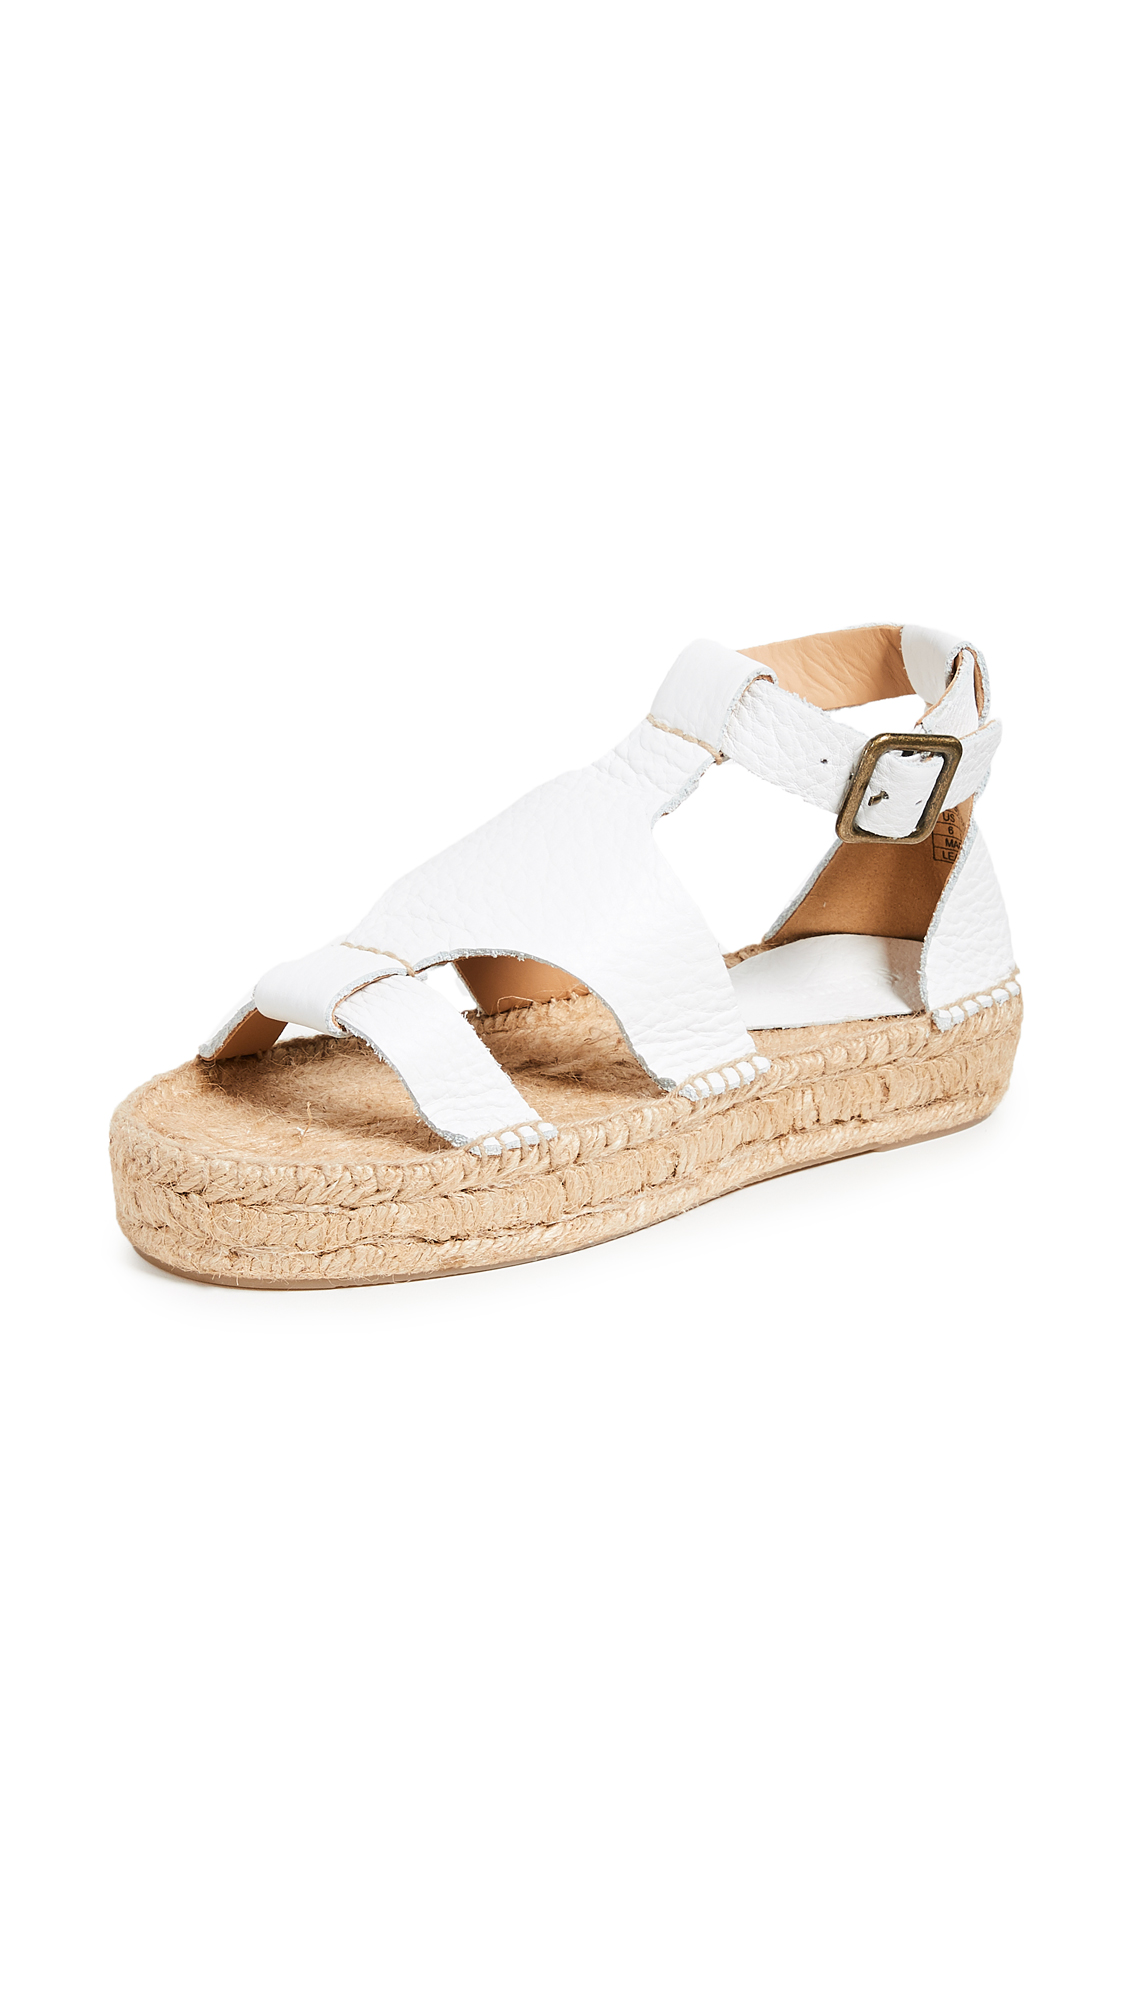 Photo of Soludos Banded Shield Sandals online shoes sales